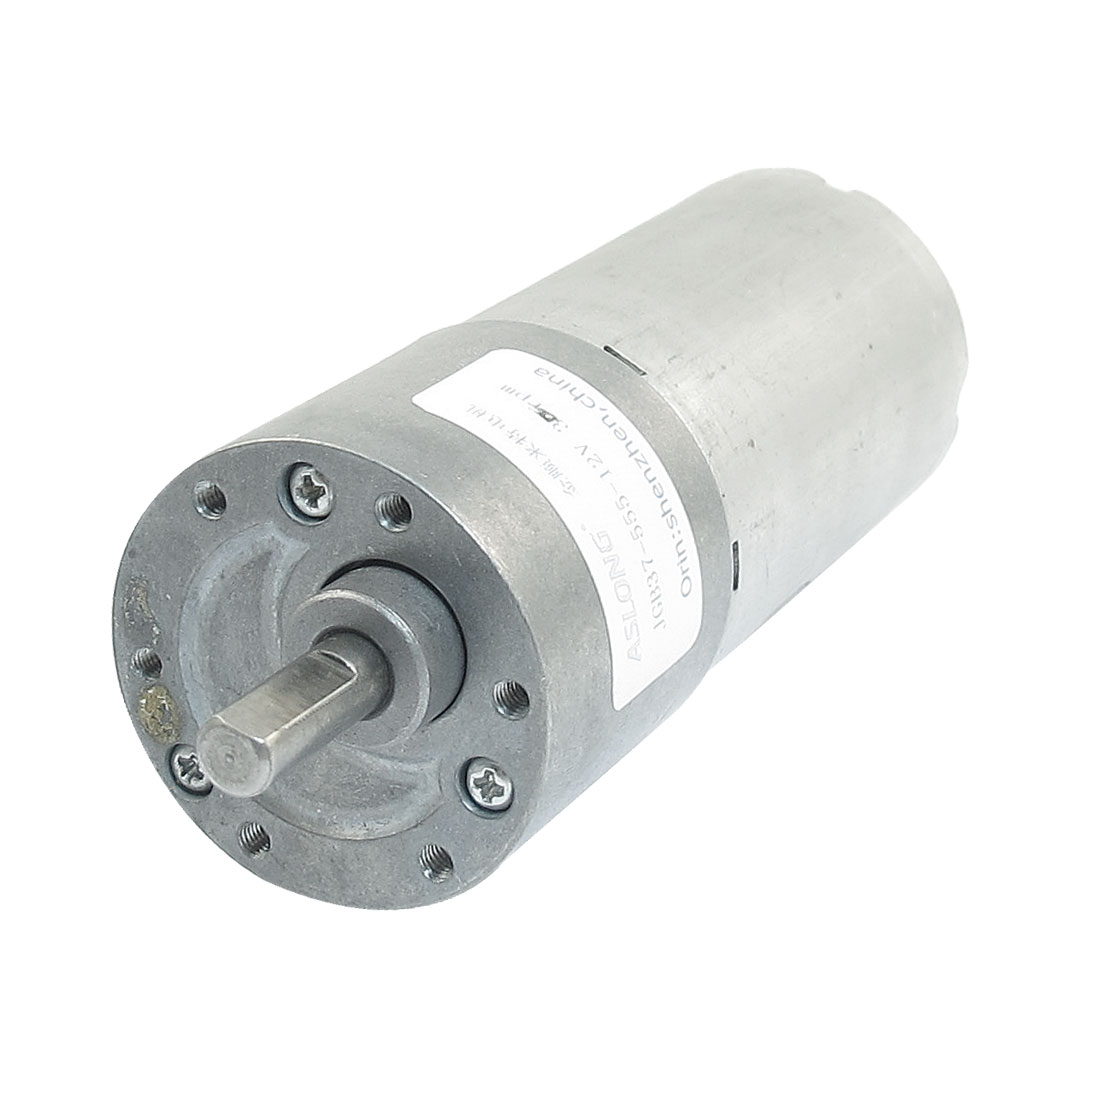 30RPM DC 12V High Torque Gear Box Electric Magnetic Speed Reduce Motor